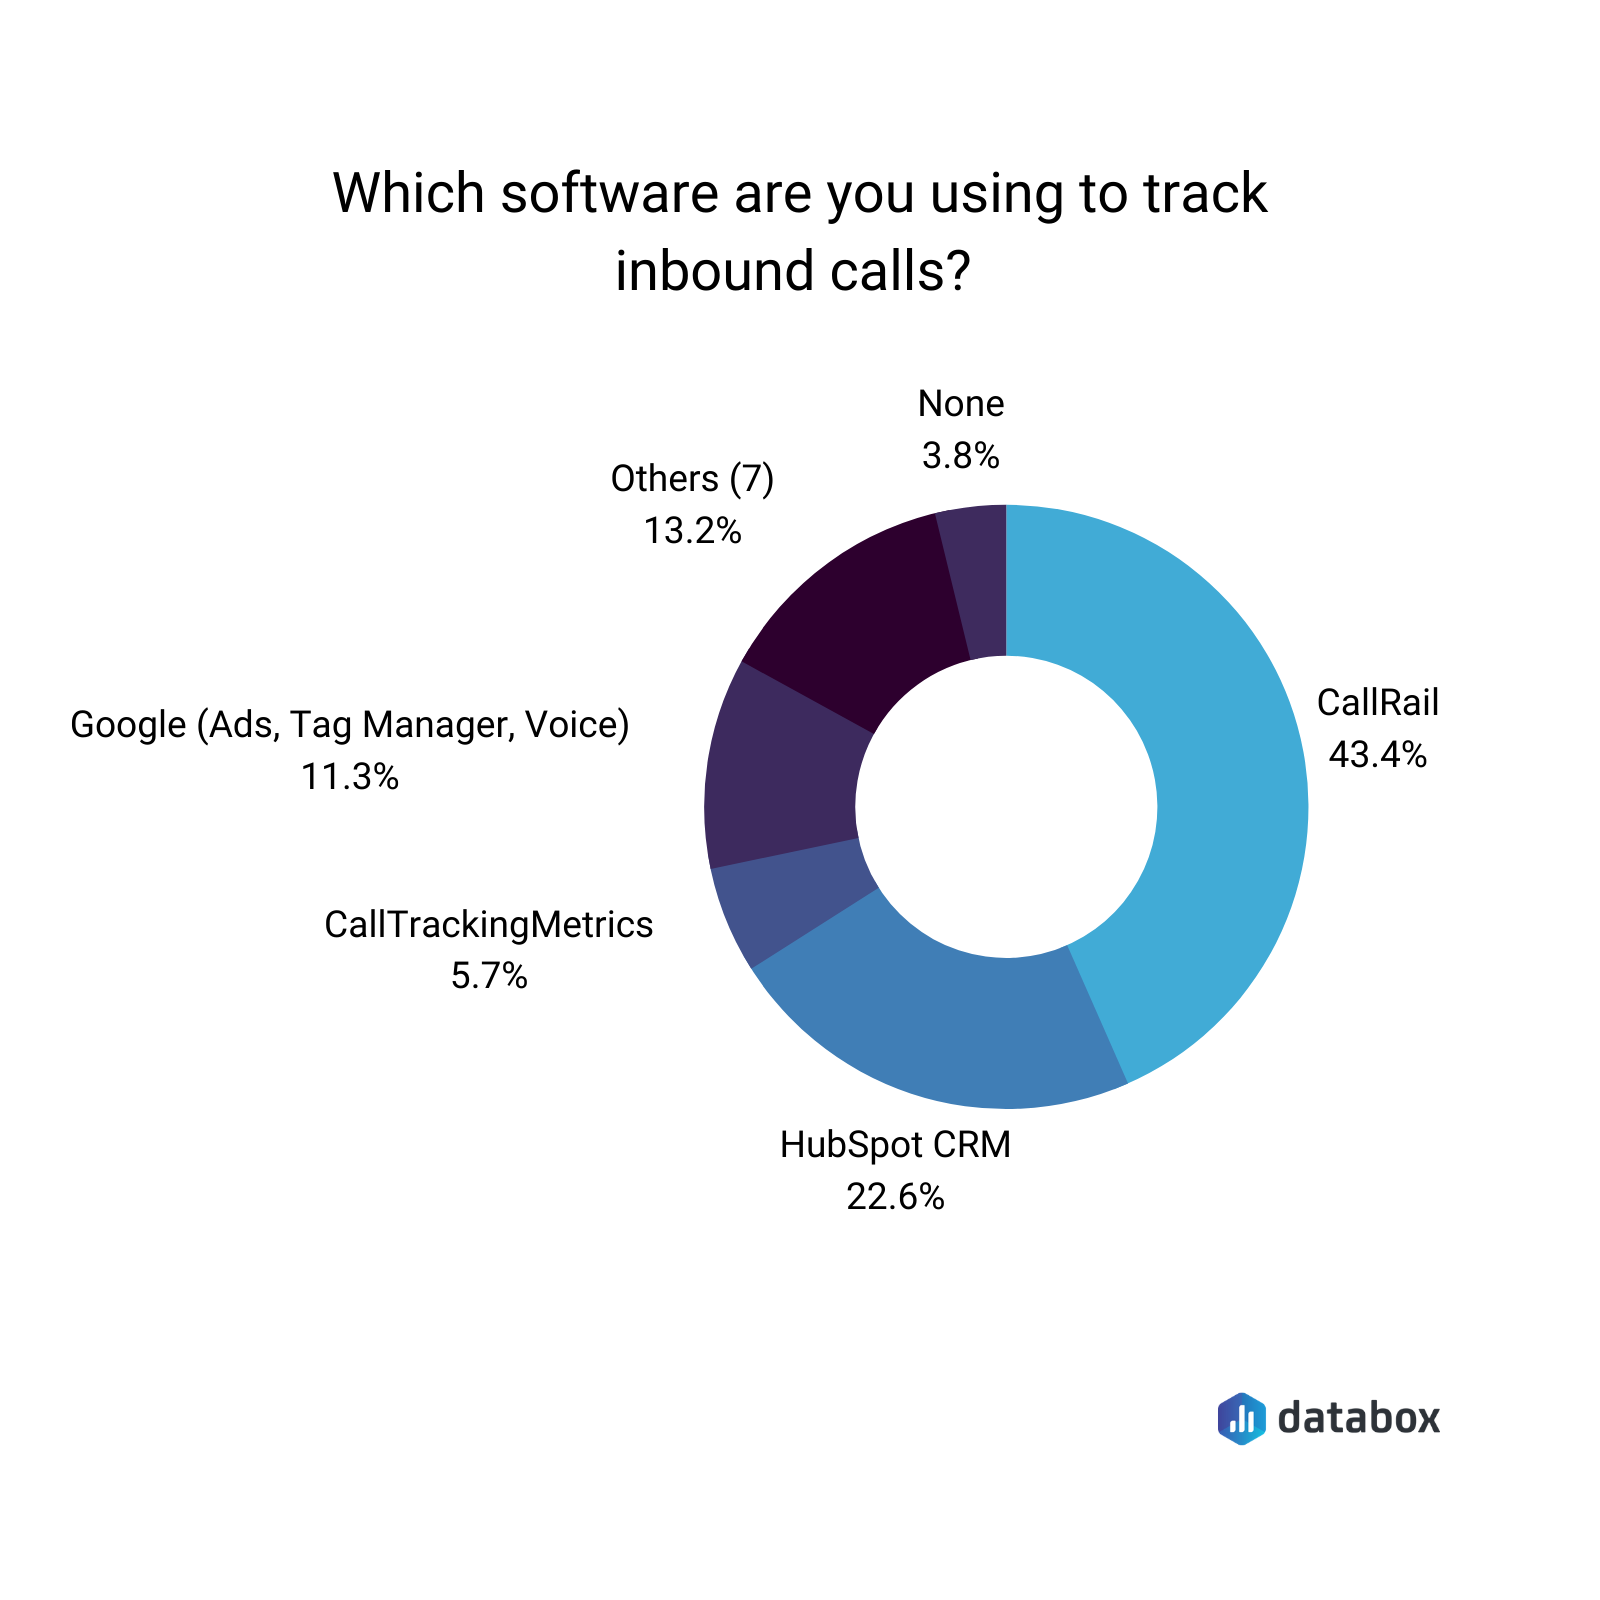 What software are you using to track inbound calls